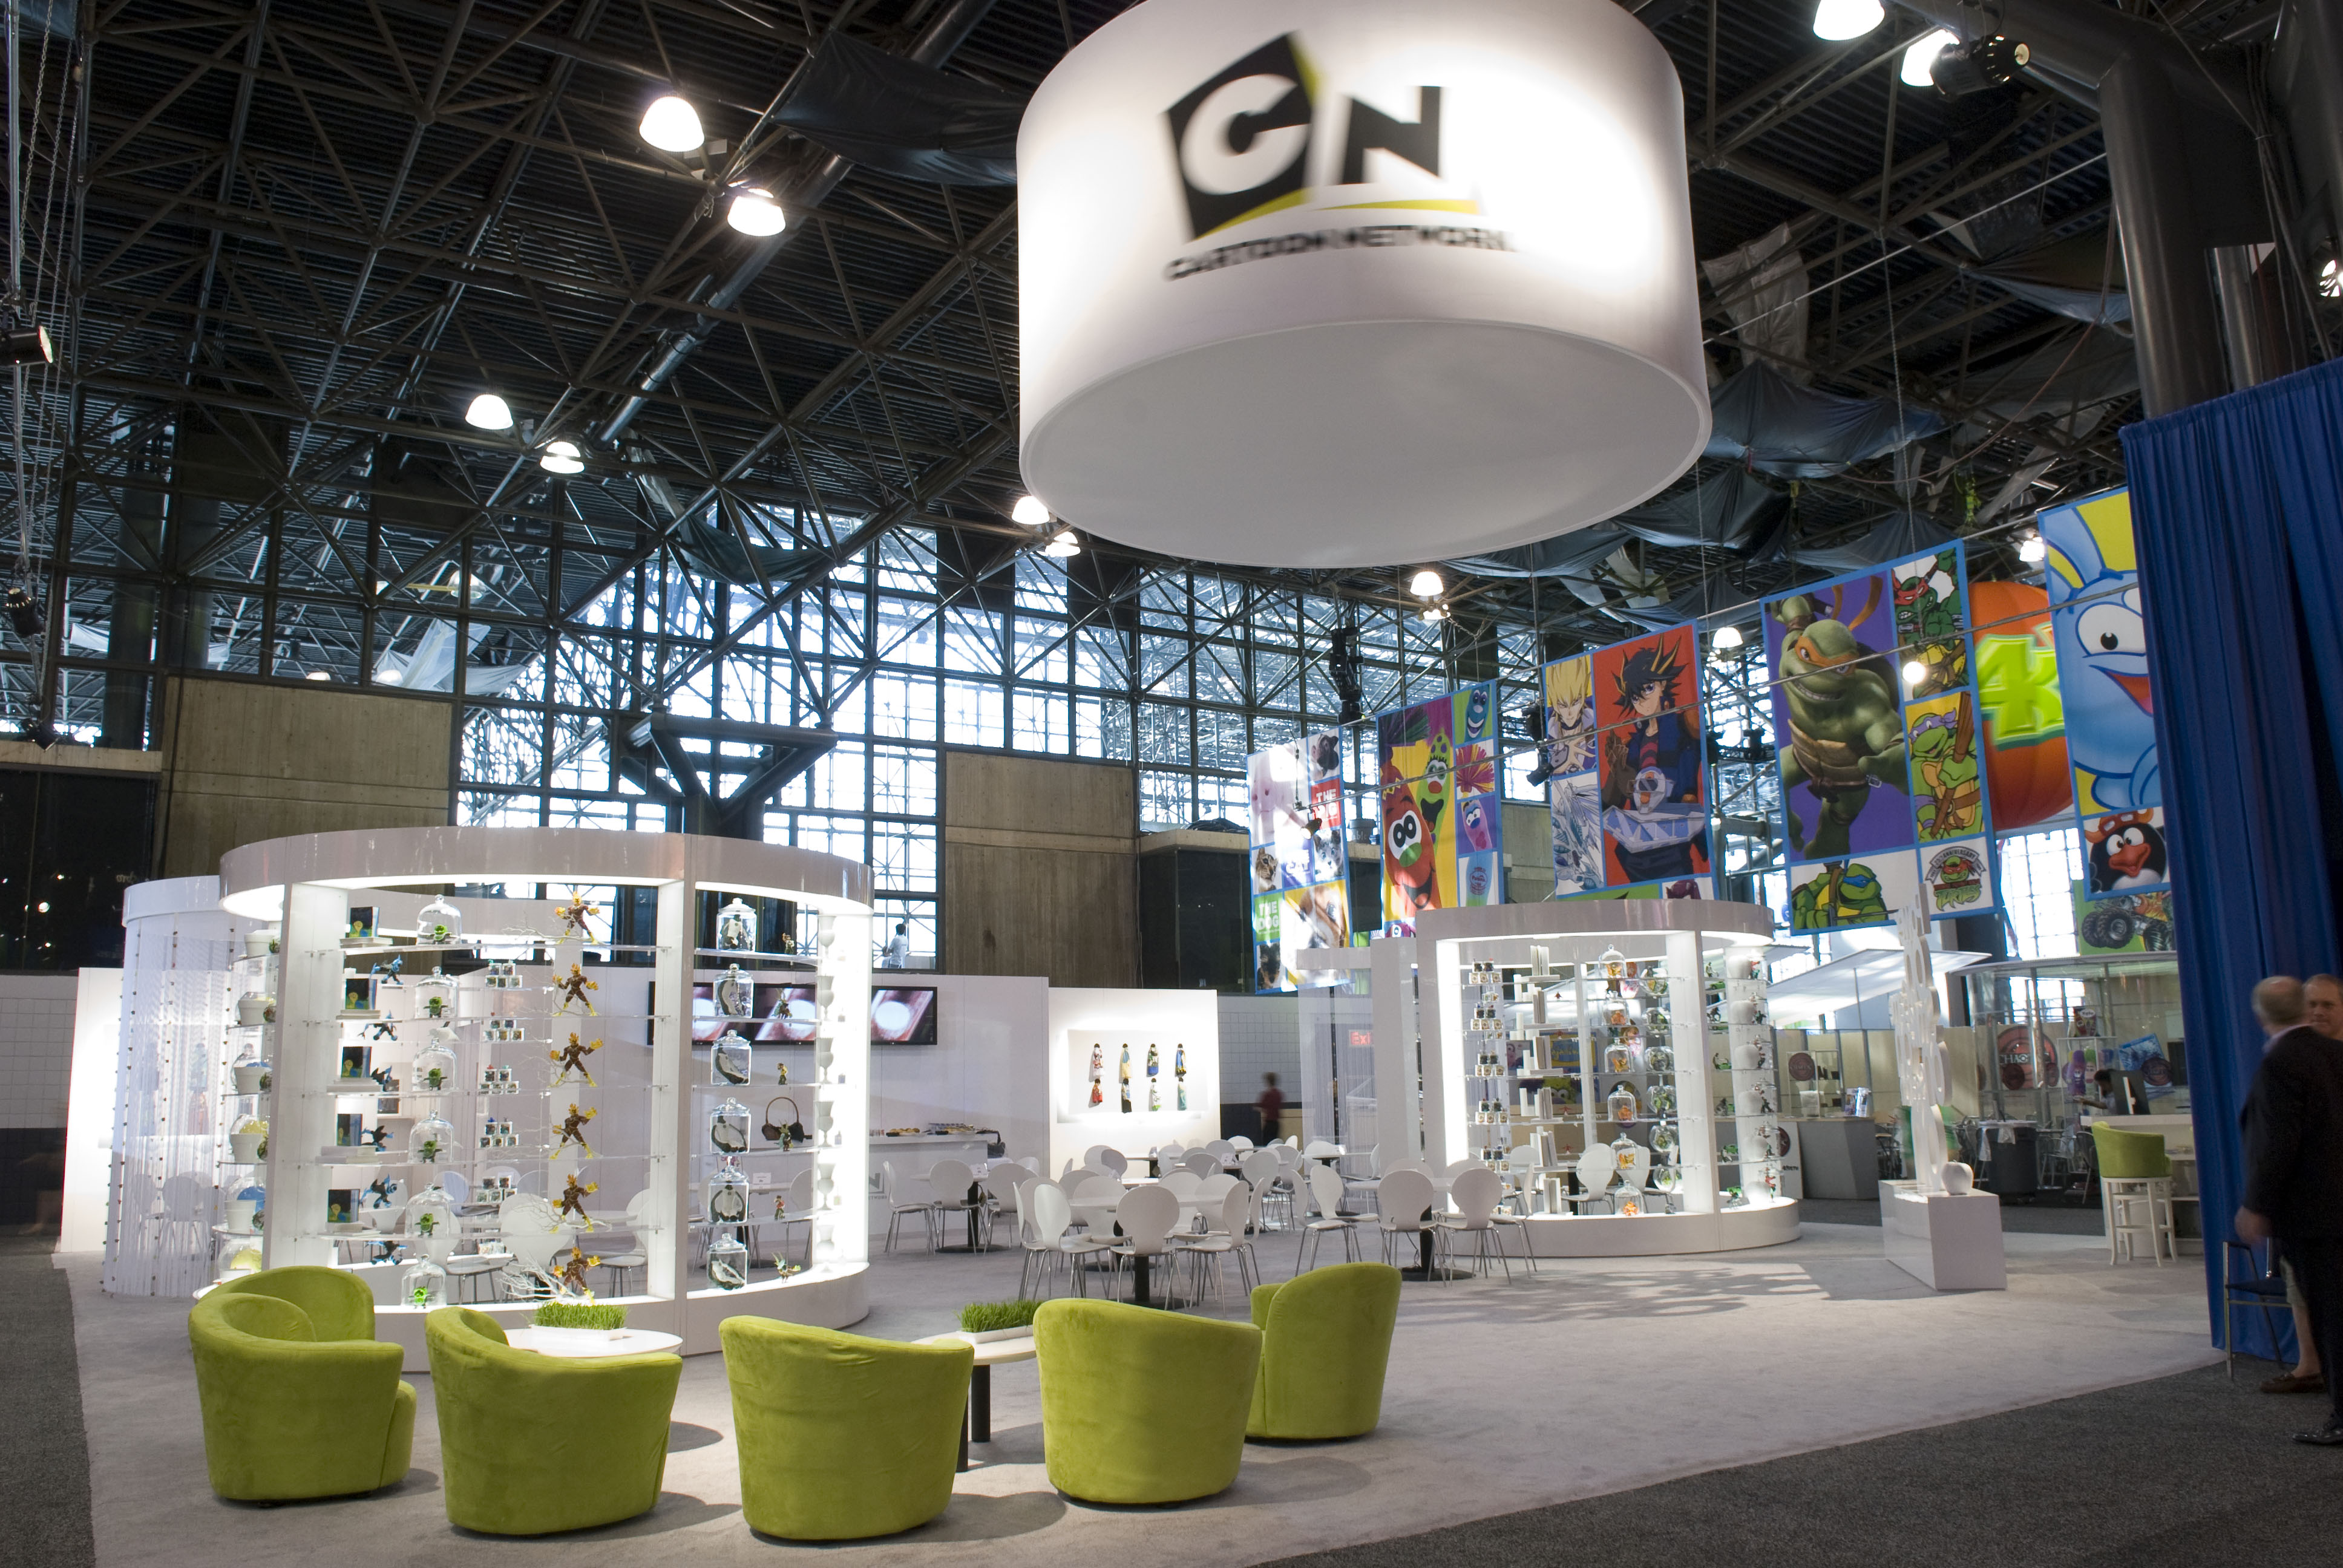 H Favorite QView Full Size Cartoon Network Trade Show